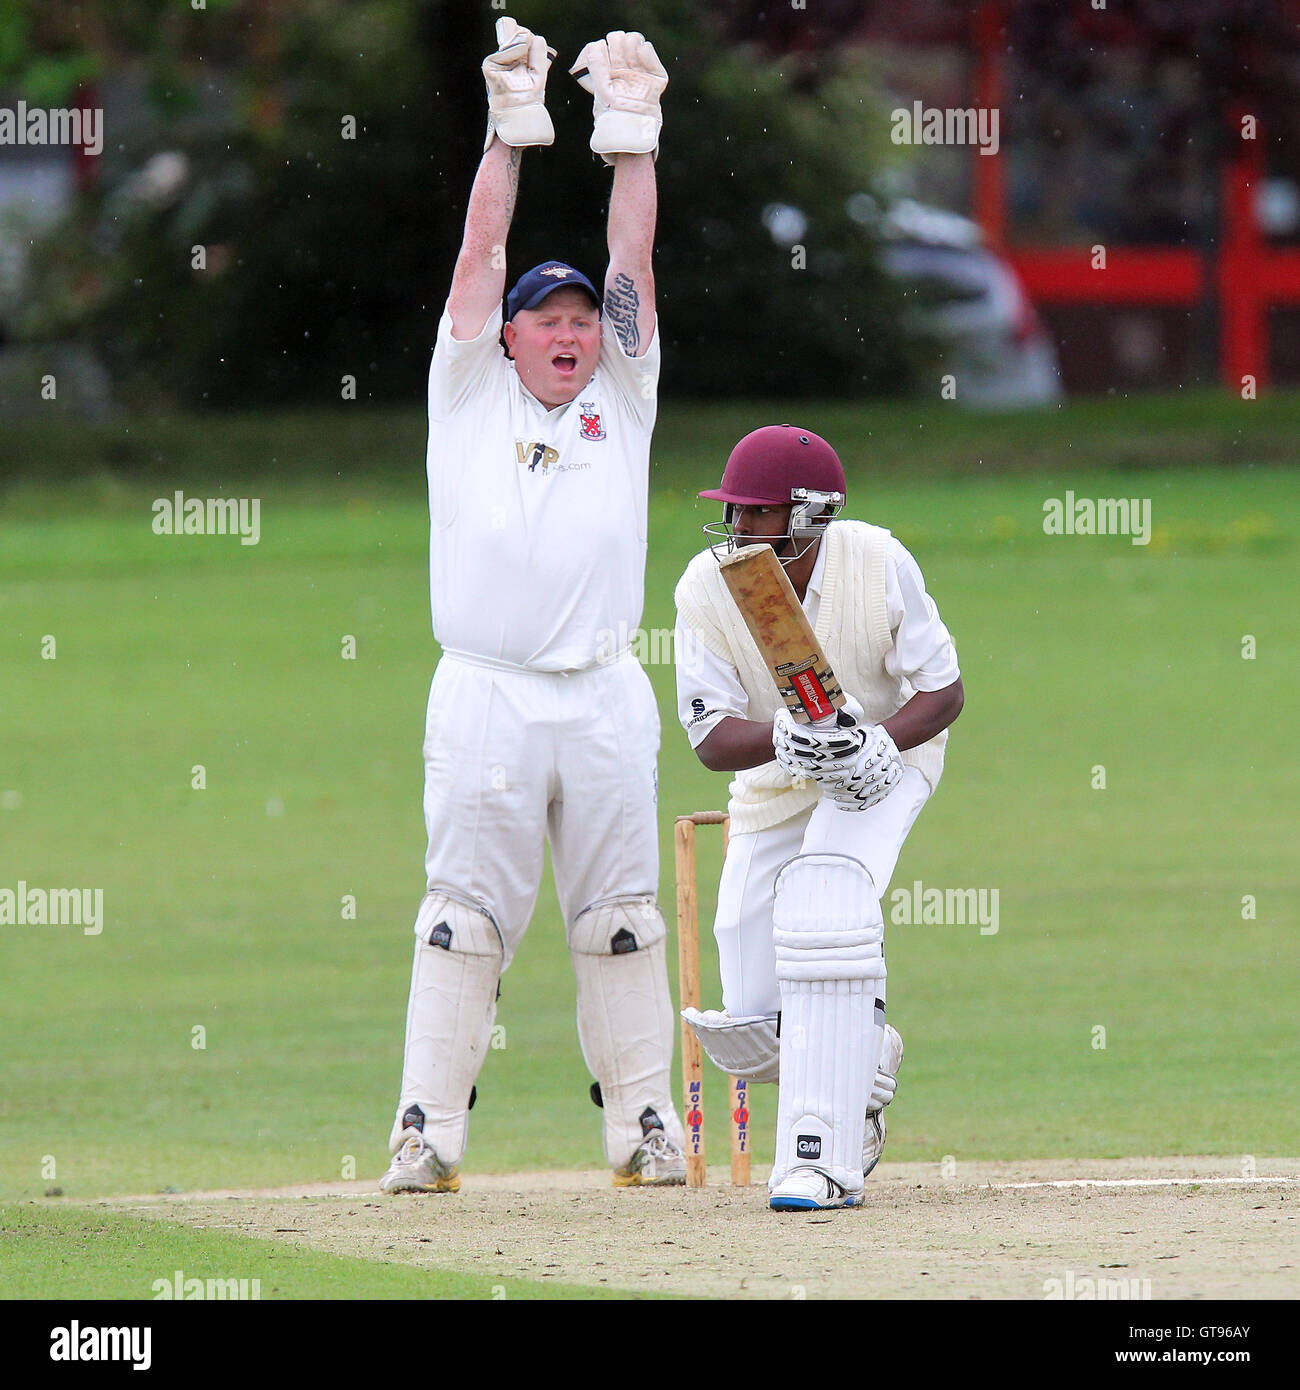 Paul Murray of Hornchurch appeals for the wicket of Jamal Francis - Hornchurch CC vs Romford & Gidea Park CC - Stock Image